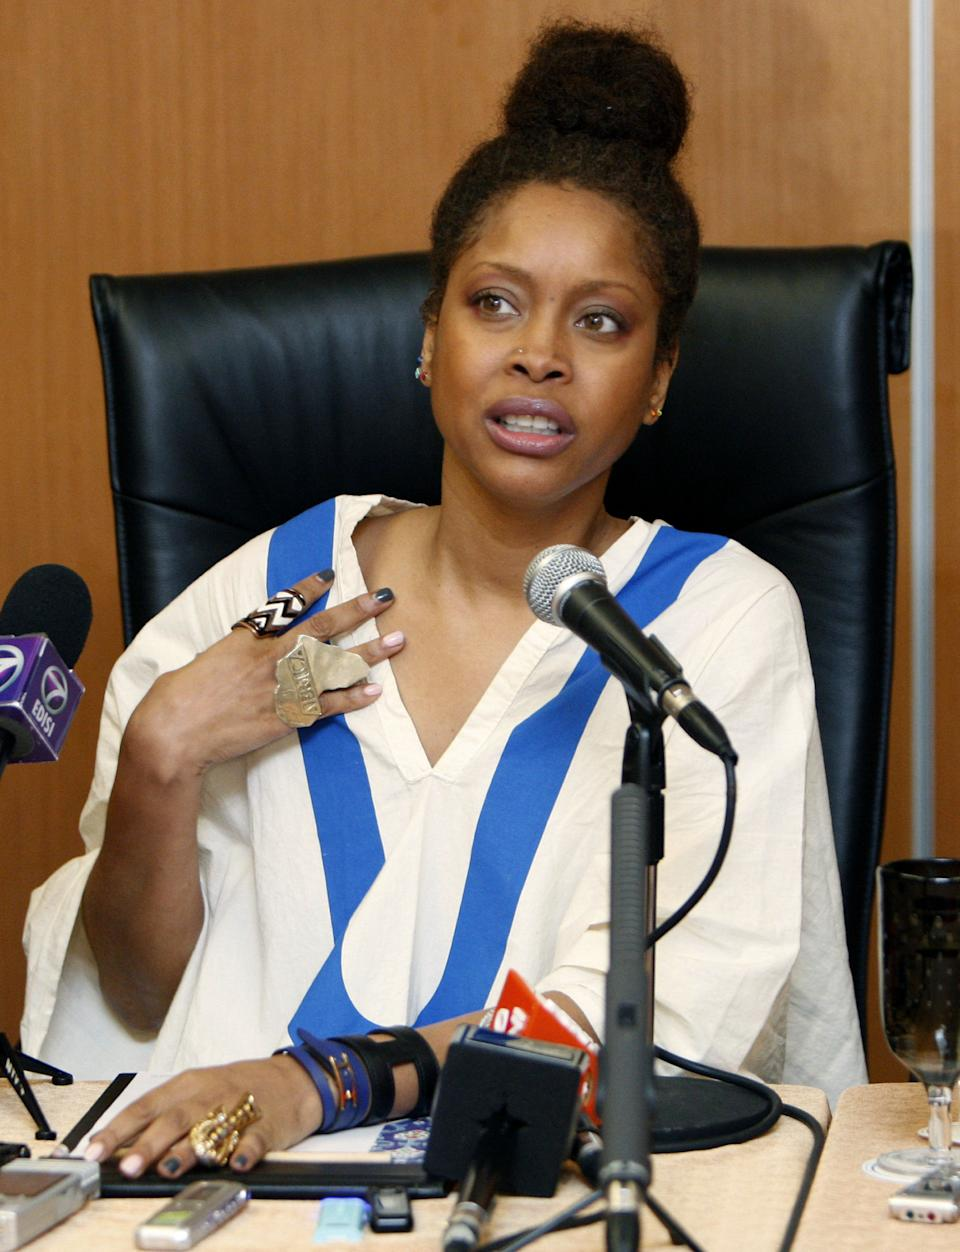 U.S. singer Erykah Badu speaks during a press conference in Kuala Lumpur, Malaysia, on Wednesday, Feb. 29, 2012. Muslim-majority Malaysia on Tuesday banned a planned concert by Badu after a photograph appeared showing the Grammy-winning singer with the Arabic word for Allah written on her body. (AP Photo/Lai Seng Sin)